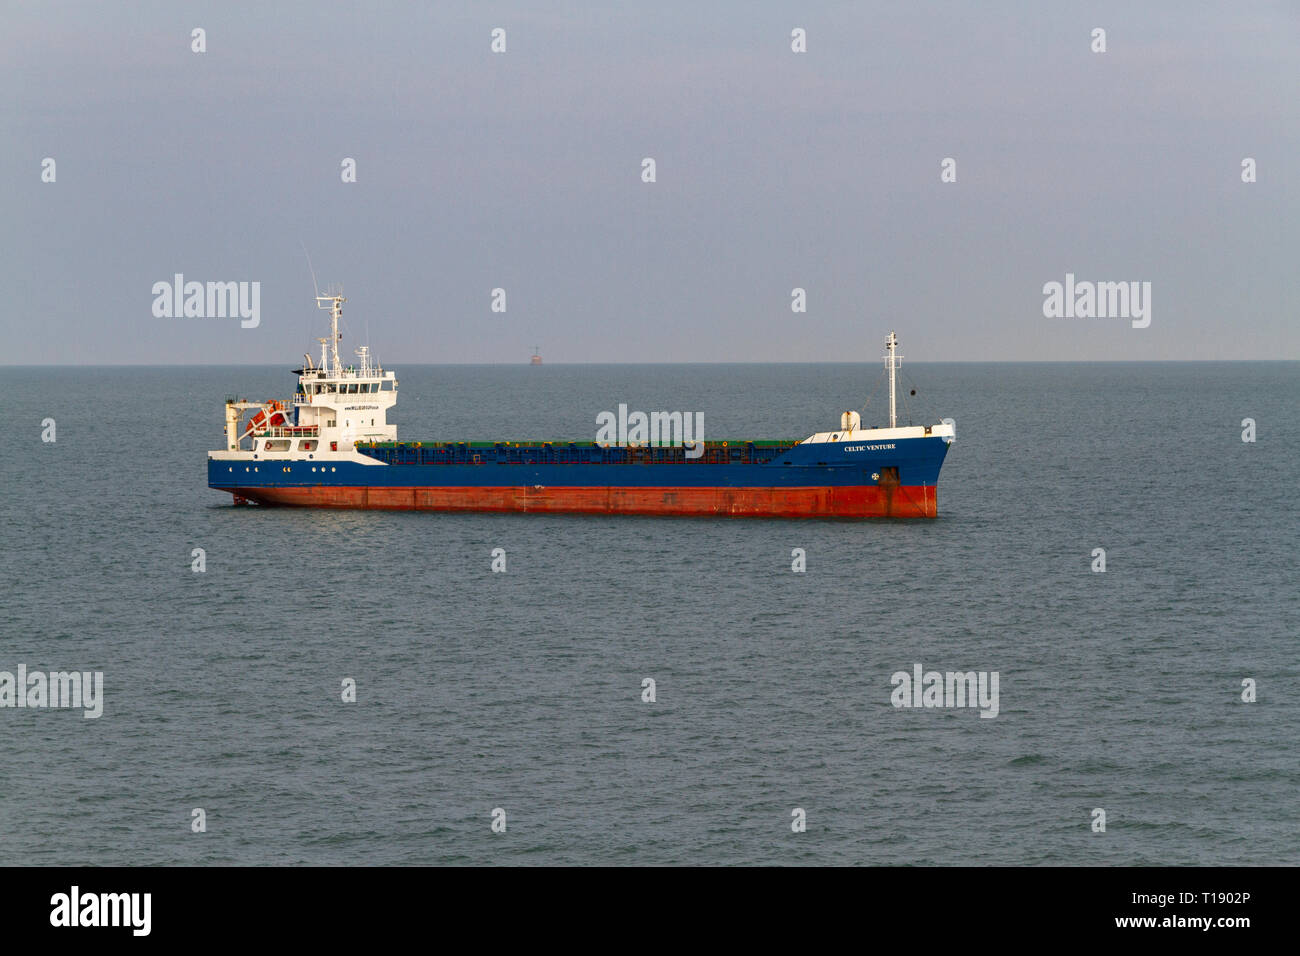 The Celtic Venture general cargo vessel in the English Channel near Cherbourg, France. - Stock Image